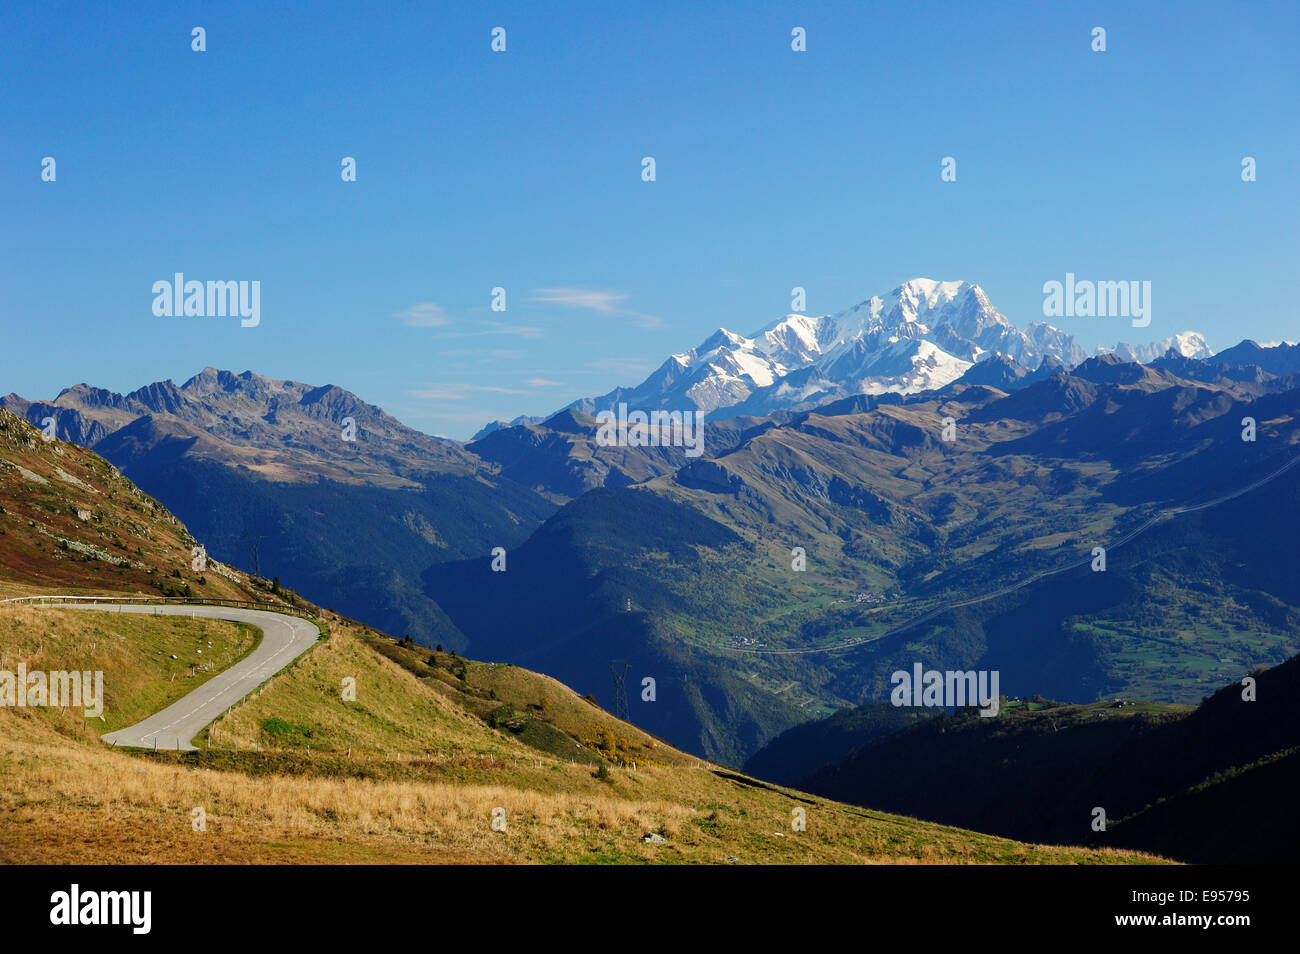 The pass road leading up to Col de la Madeleine, the snow-capped peaks of the Mont Blanc Massif at the back, Alps, Stock Photo